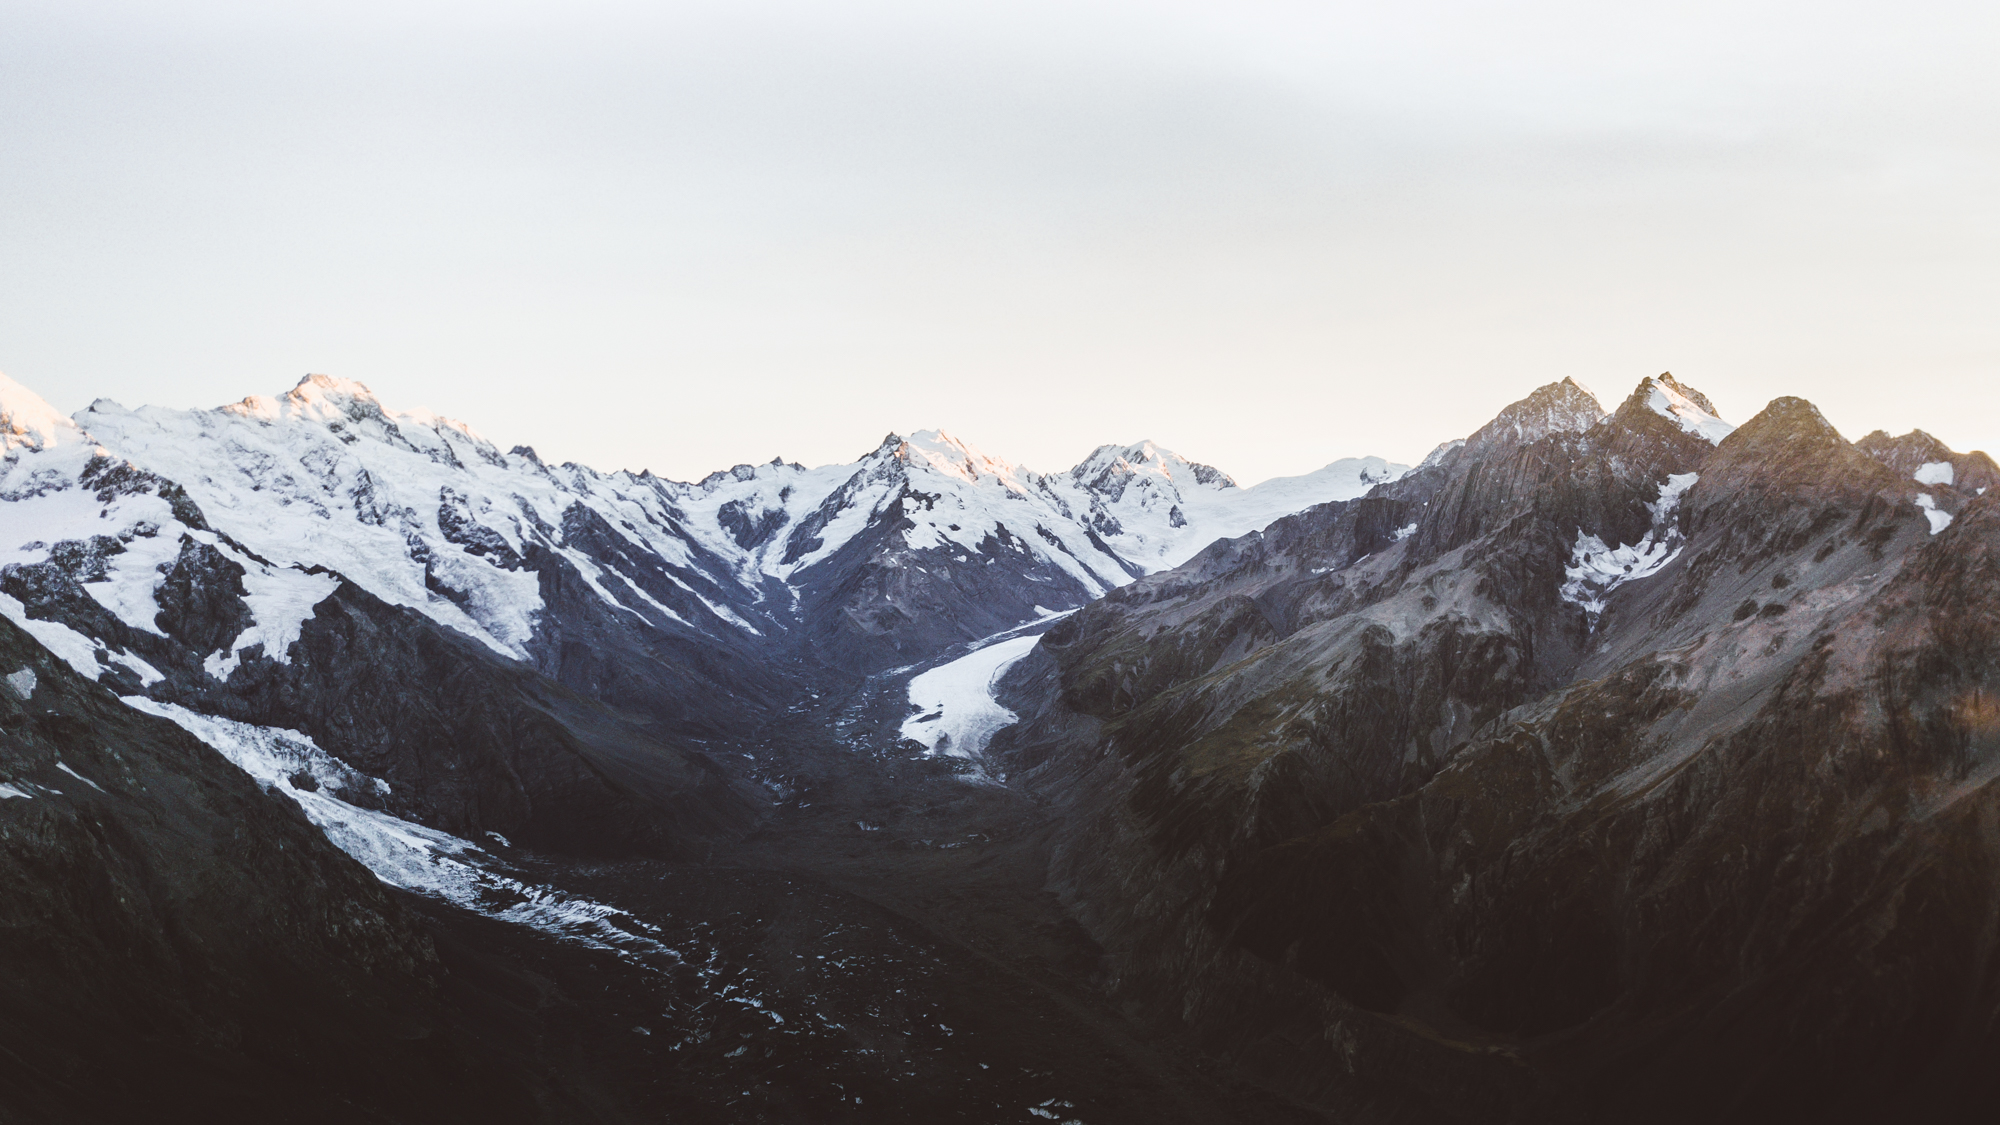 Views over the Tasman Glacier from on the Ball Pass